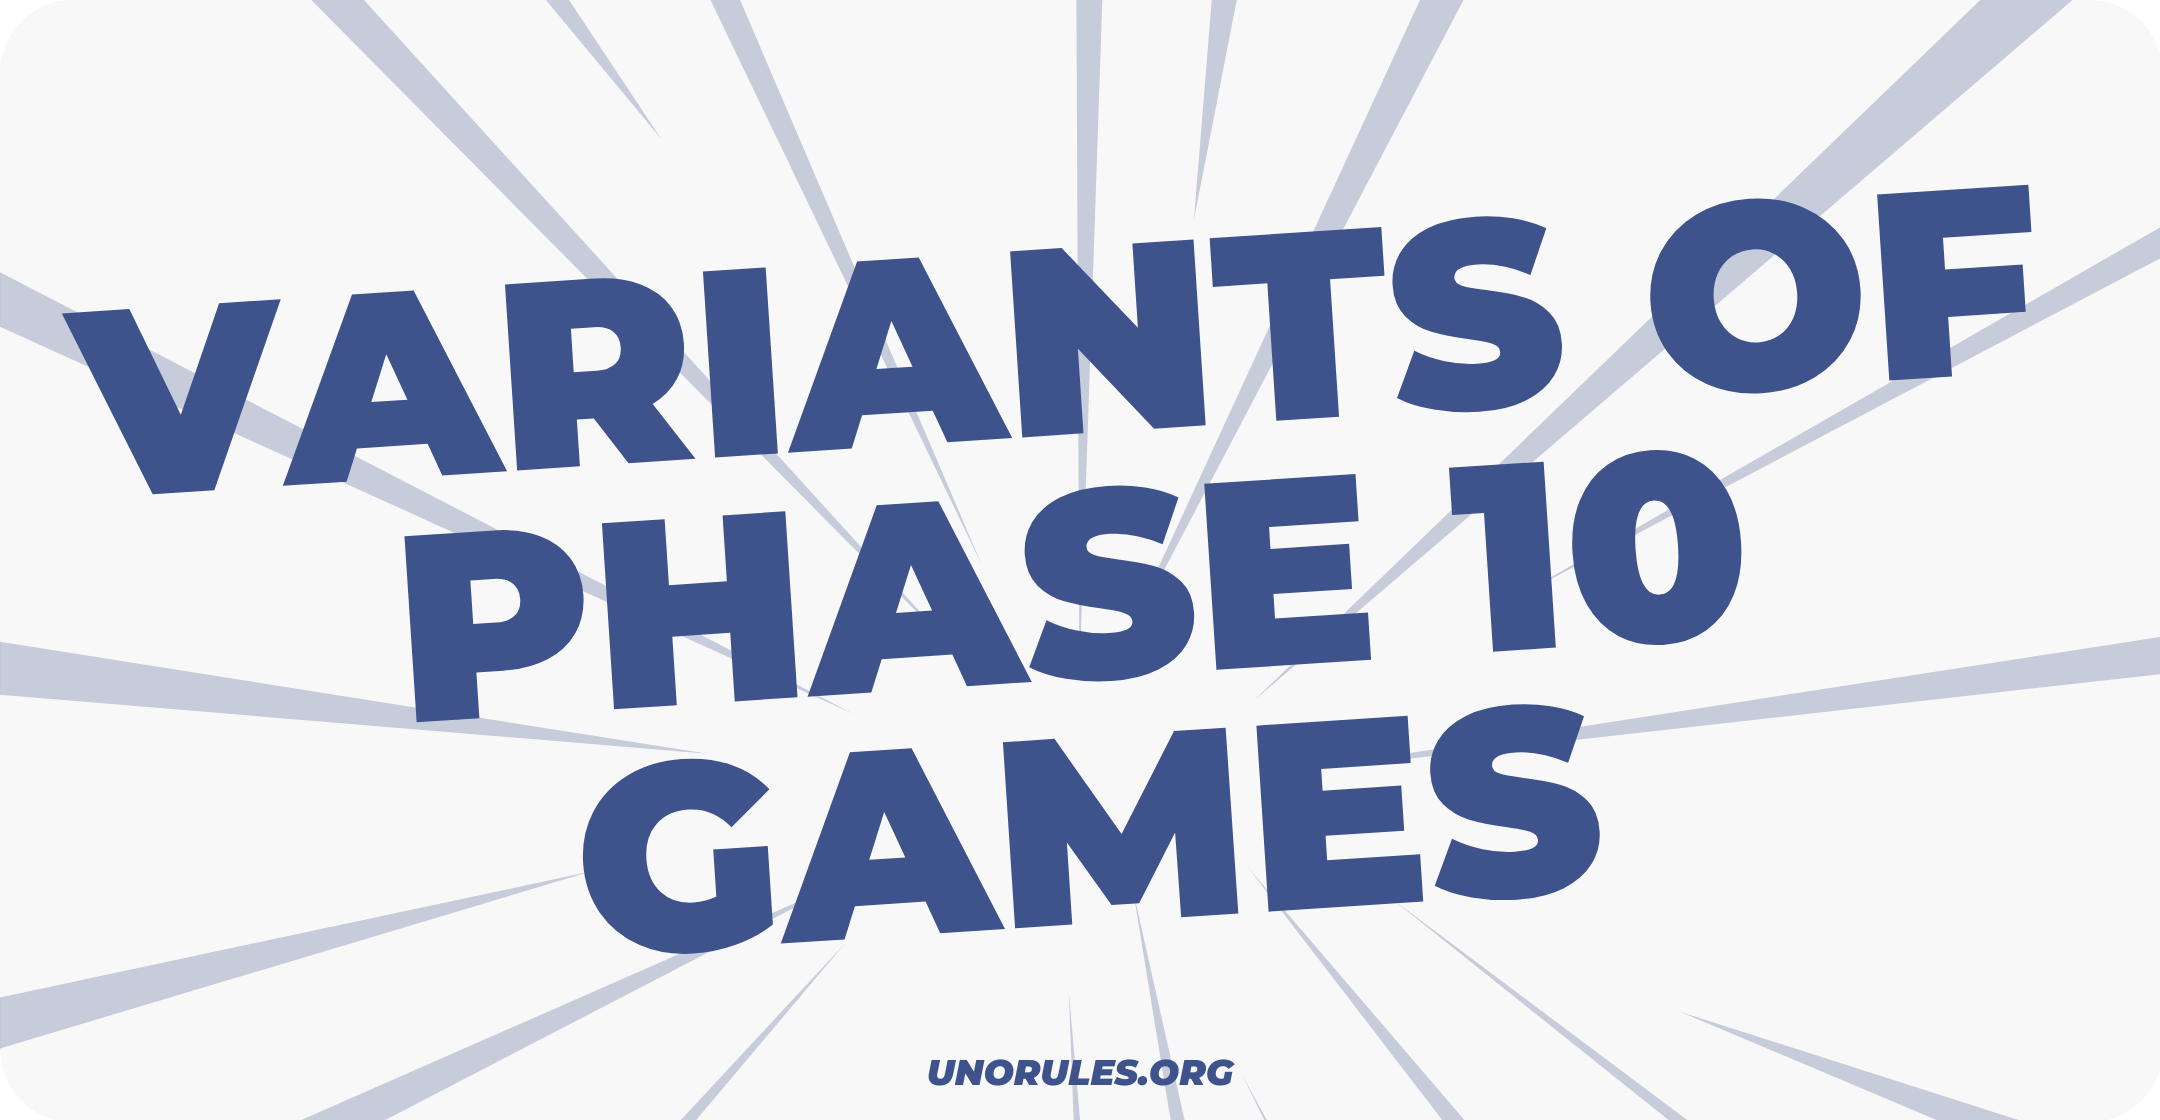 Variants of Phase 10 games